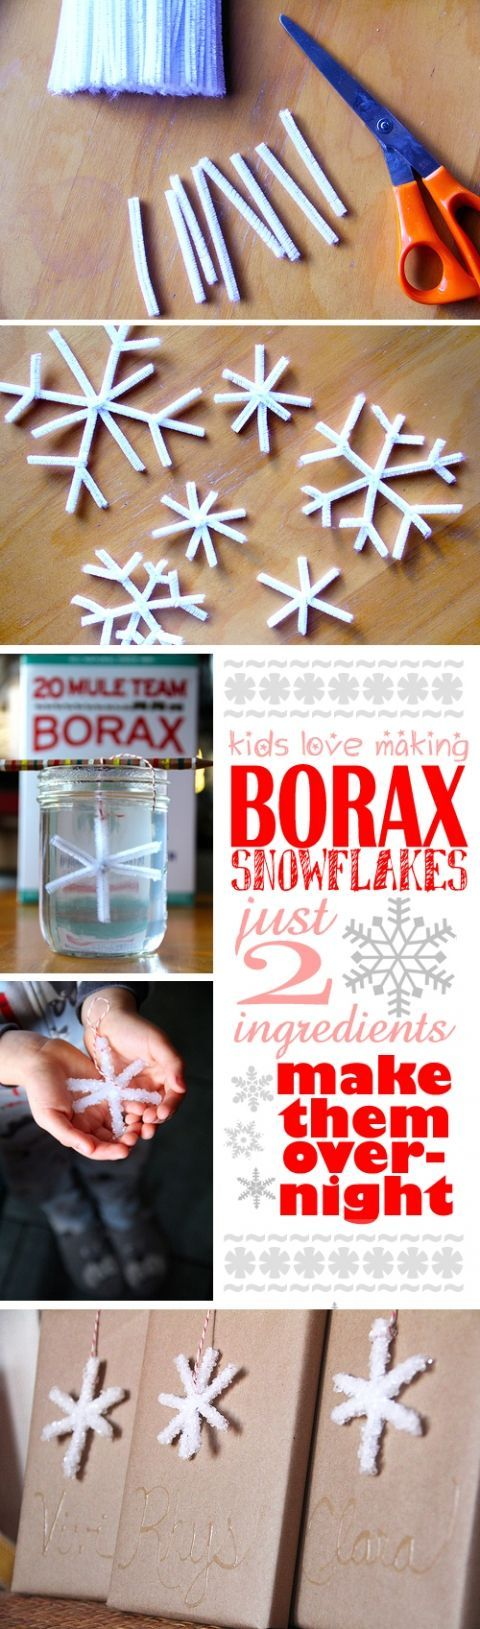 Borax Uses for Kids on Frugal Coupon Living. 15 of the most creative Borax Recipes and science experiments to create in the home.